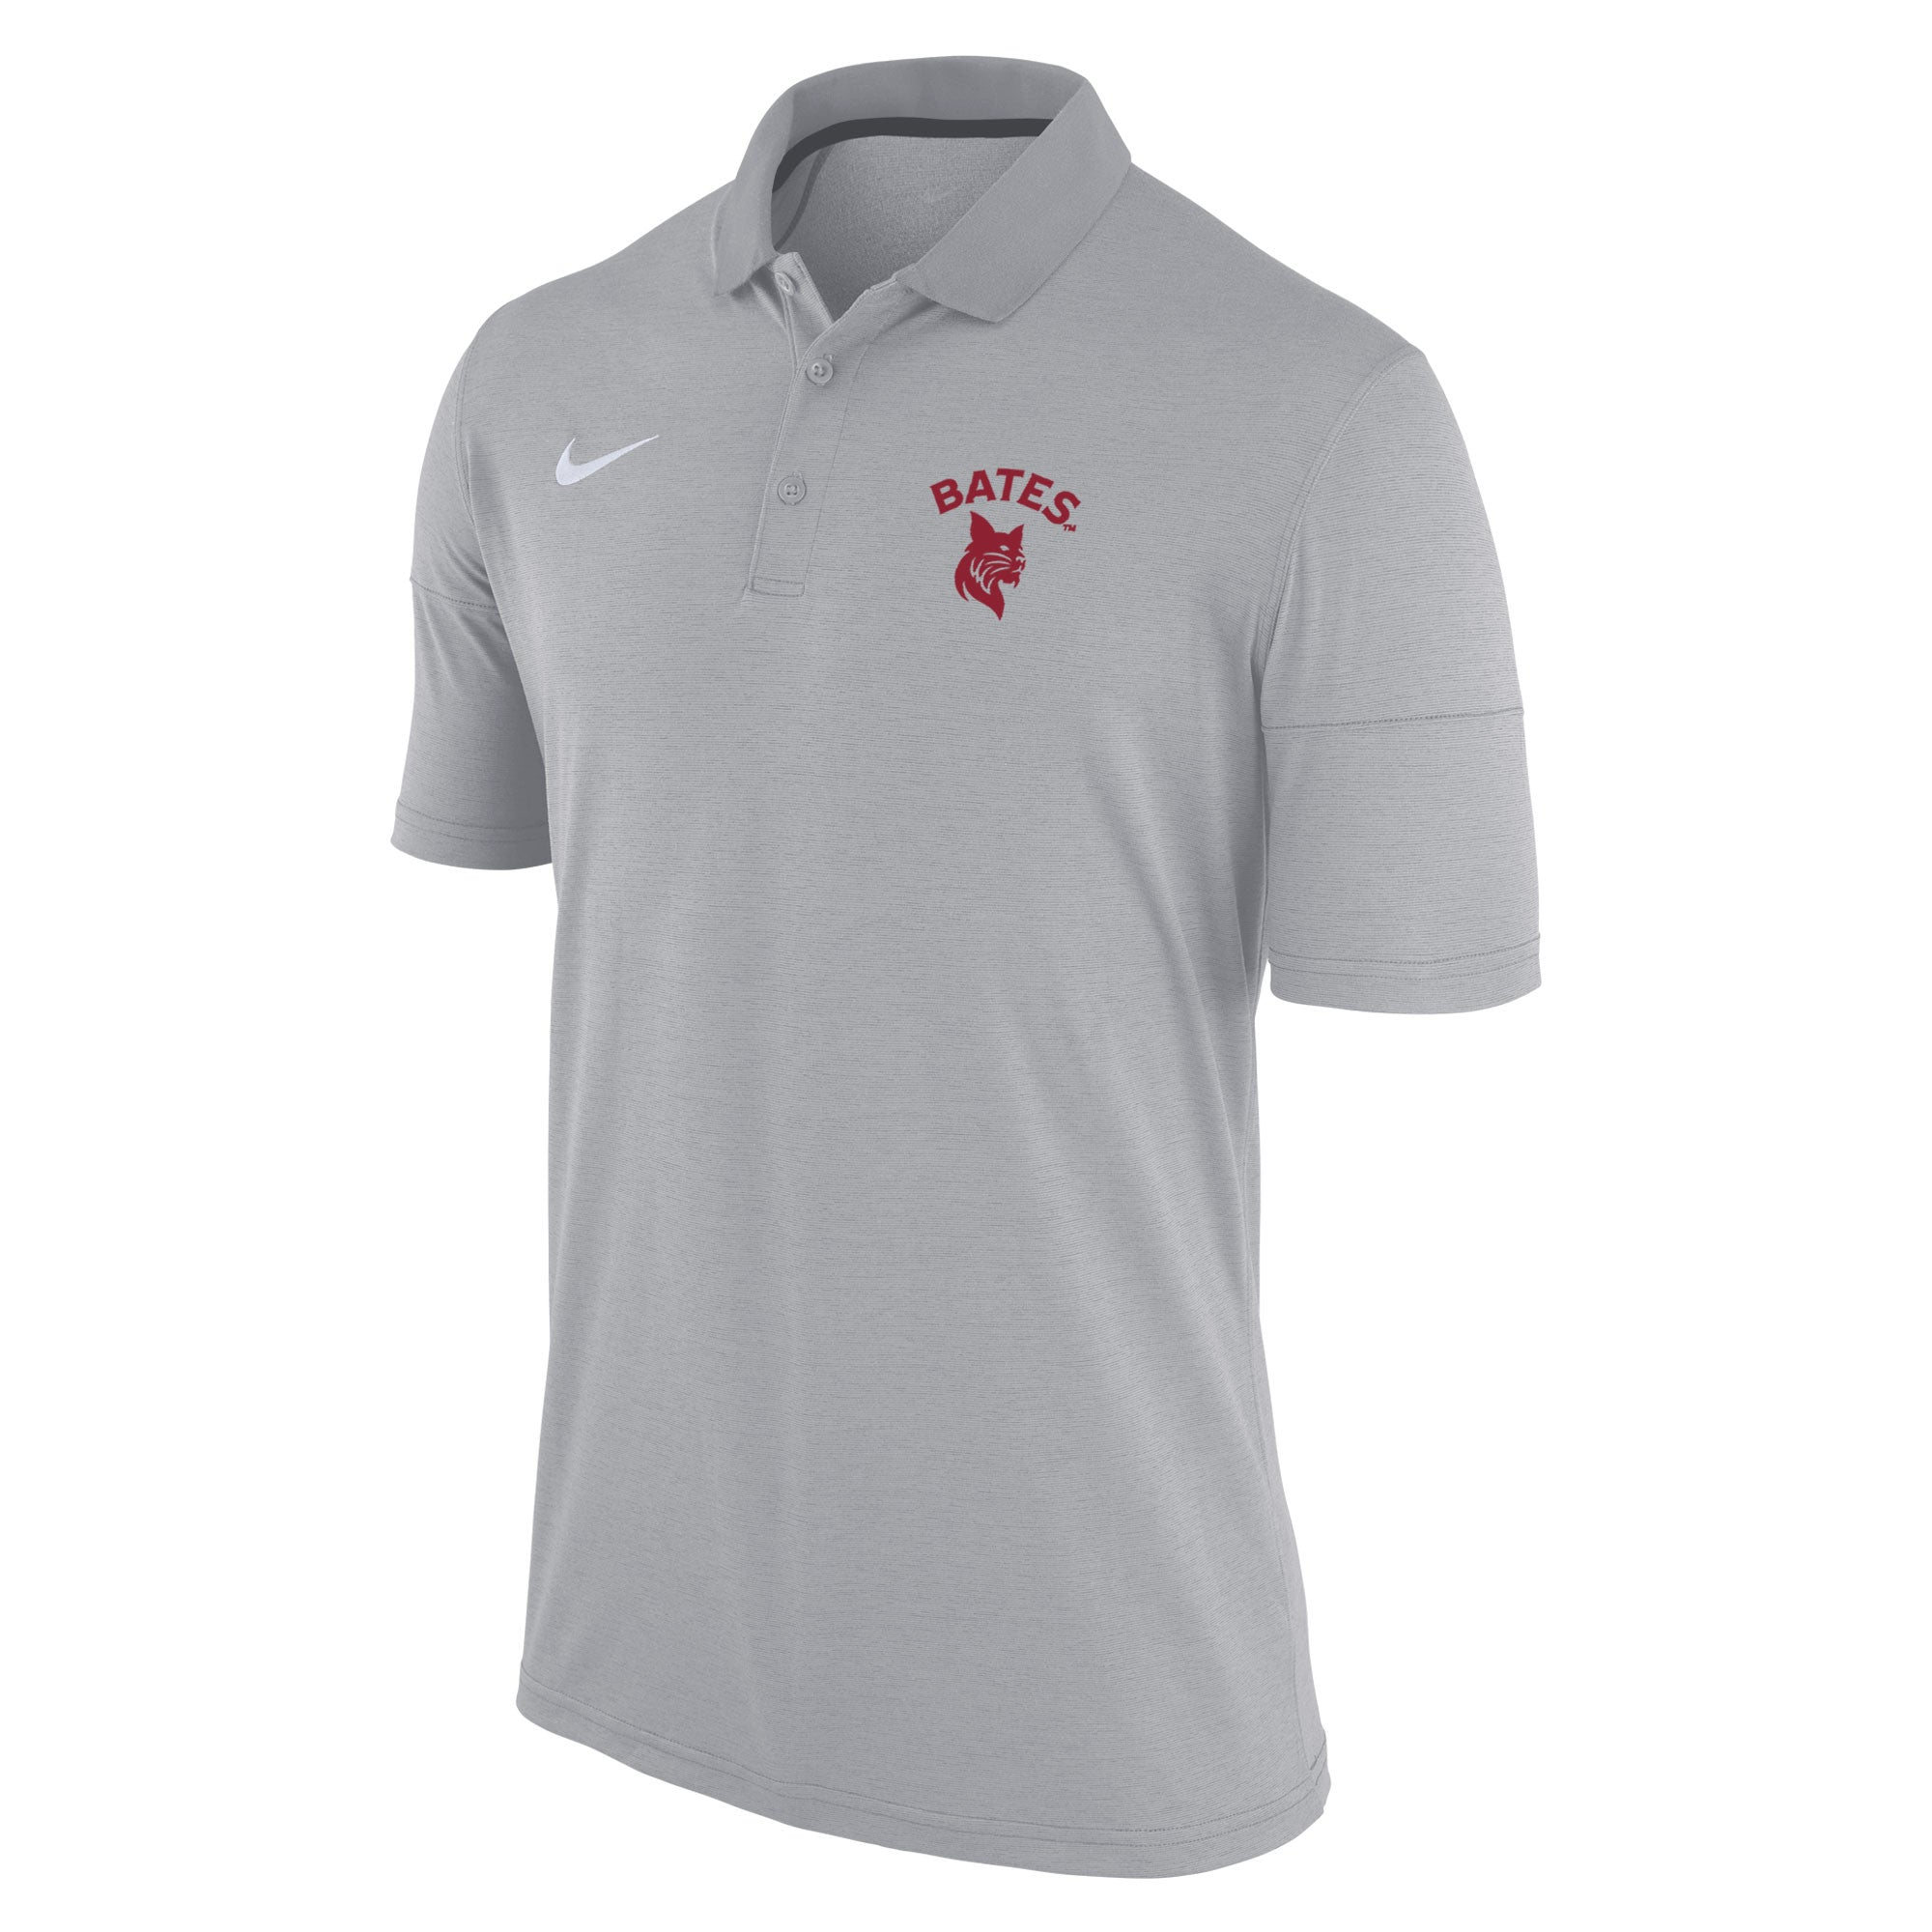 7bb02f1e Nike Men's Dri-Fit Polo Shirt | Bates College Store